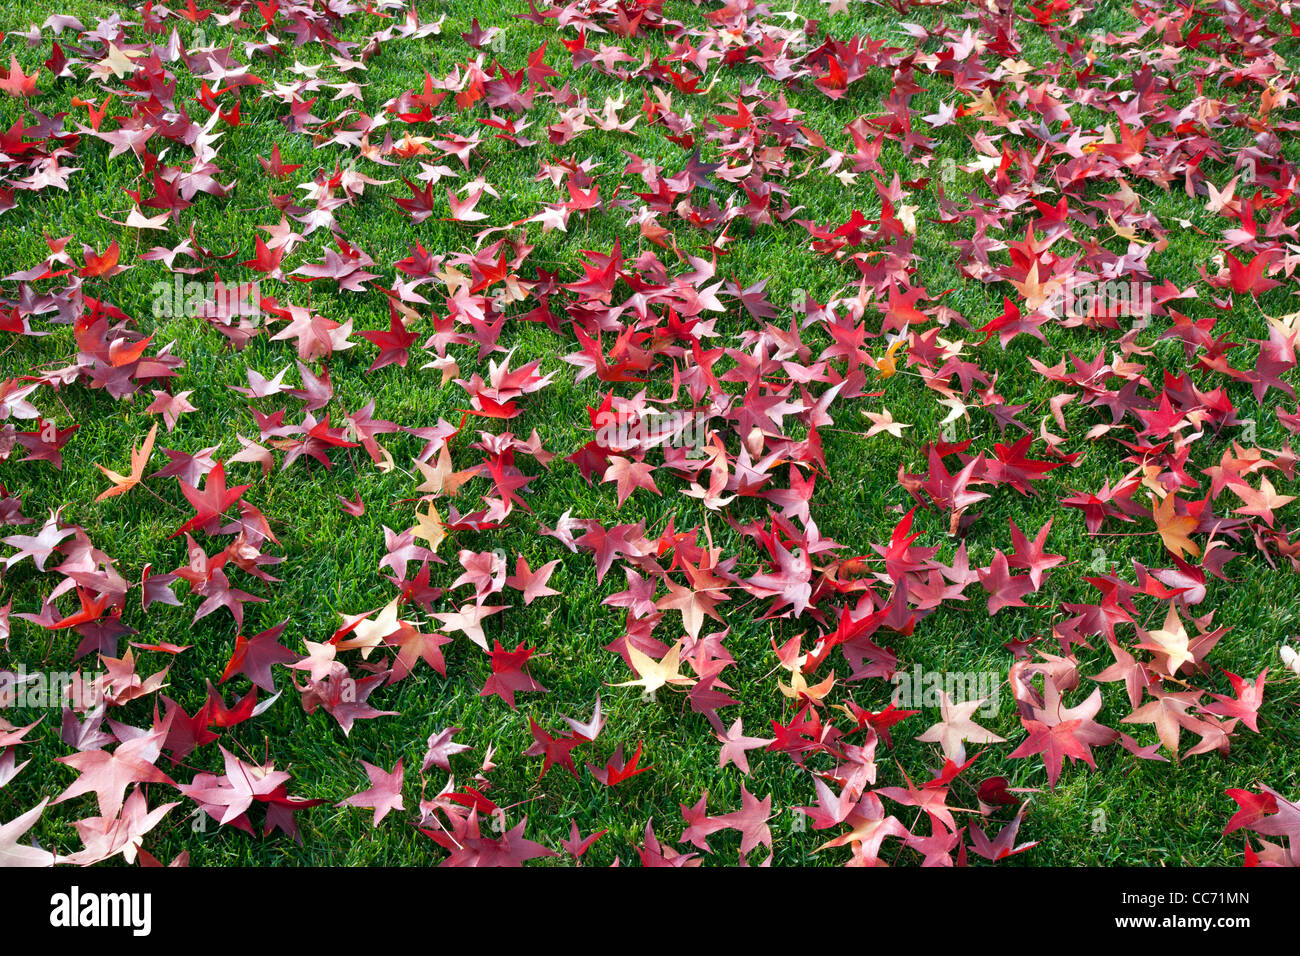 Red Liquid Amber Leaves on Green Lawn - Stock Image